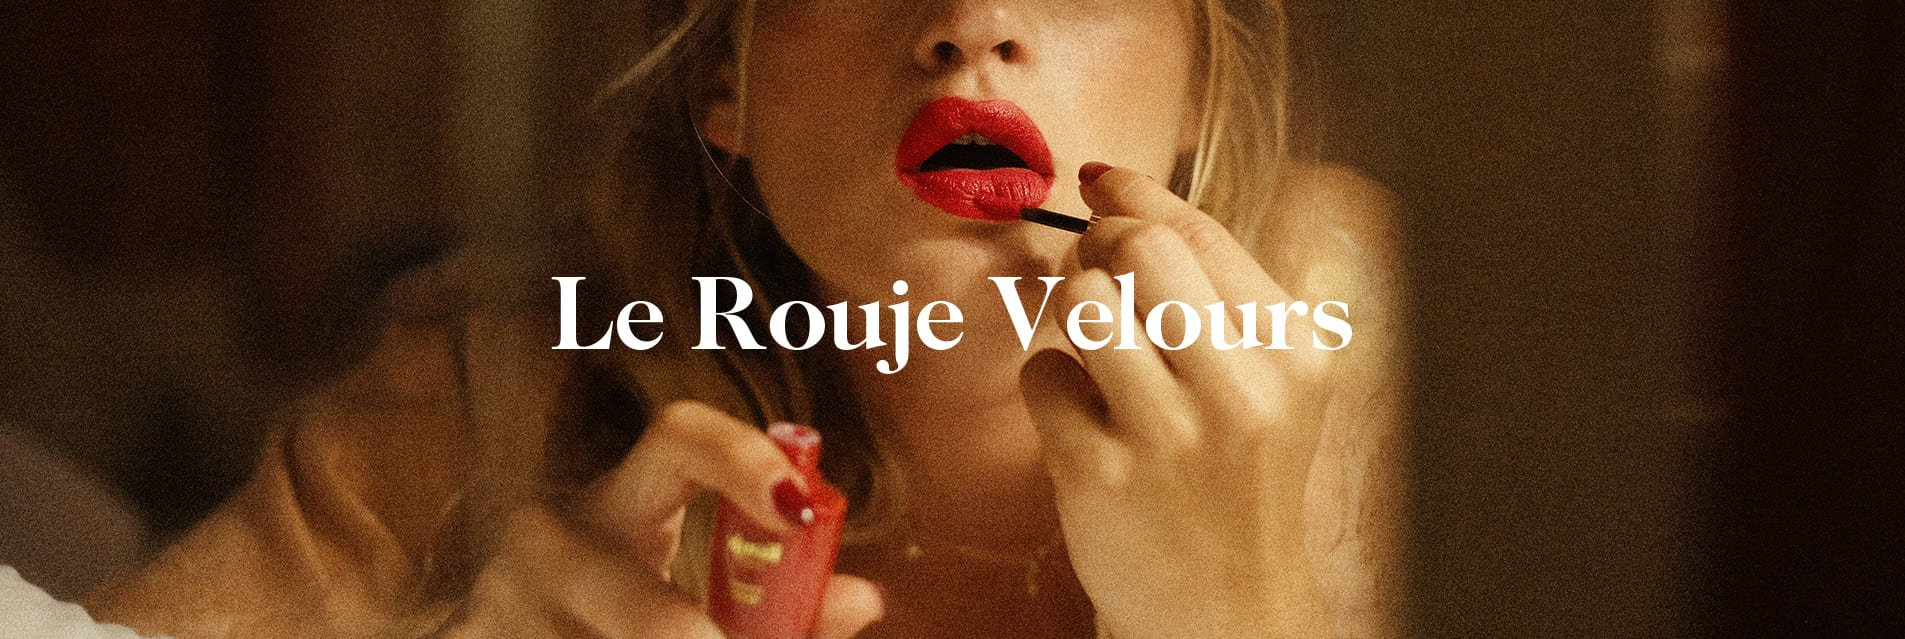 Le Rouje Velours